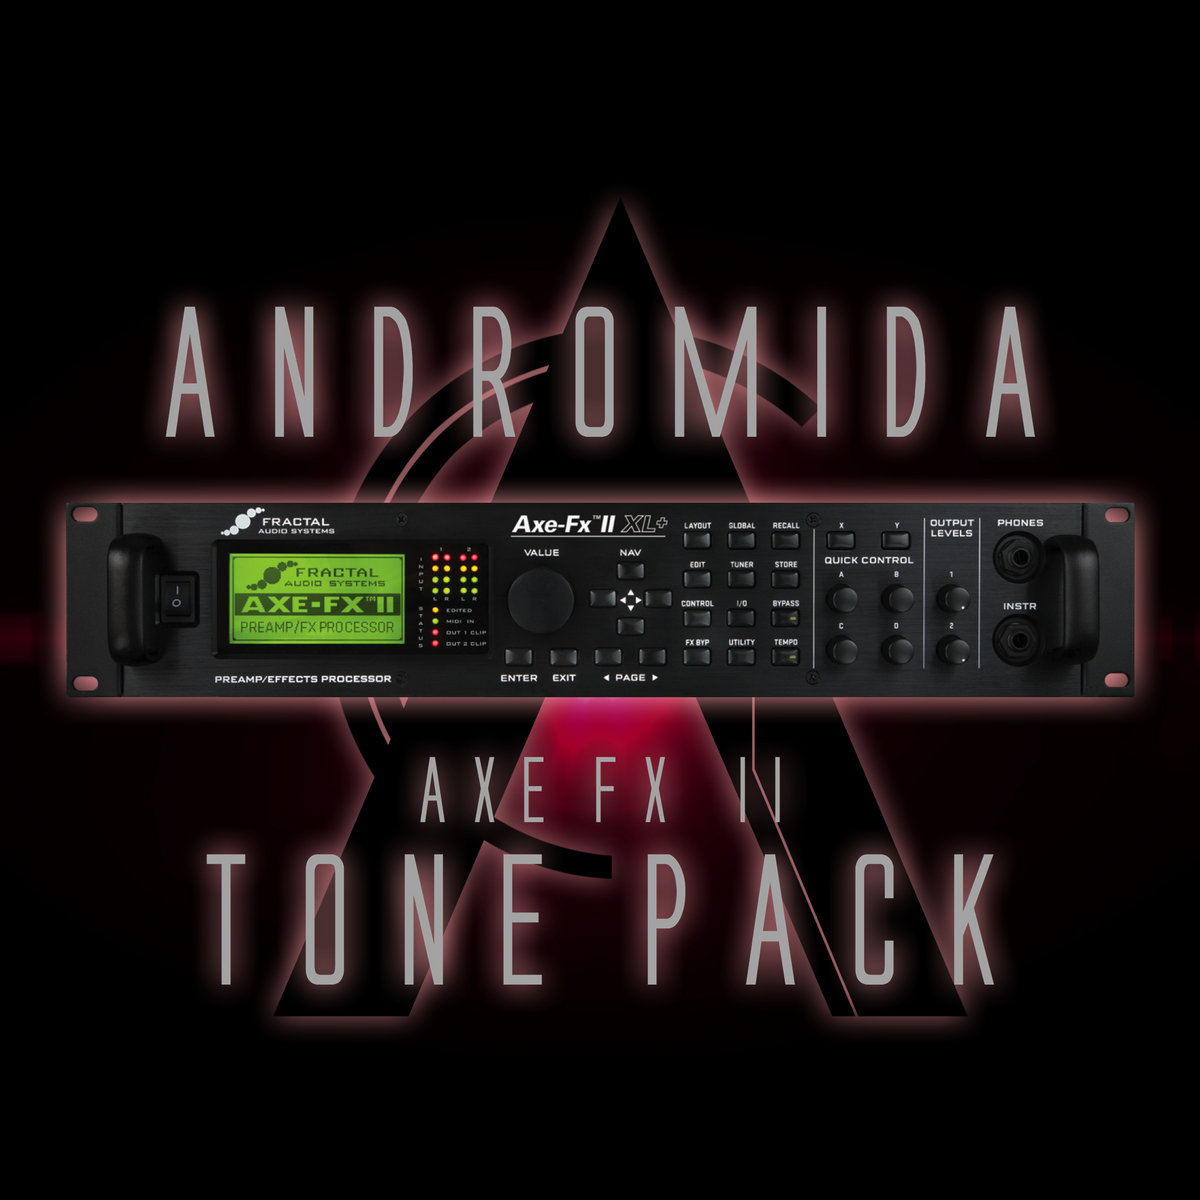 Axe Fx 2 Tone Pack | Andromida